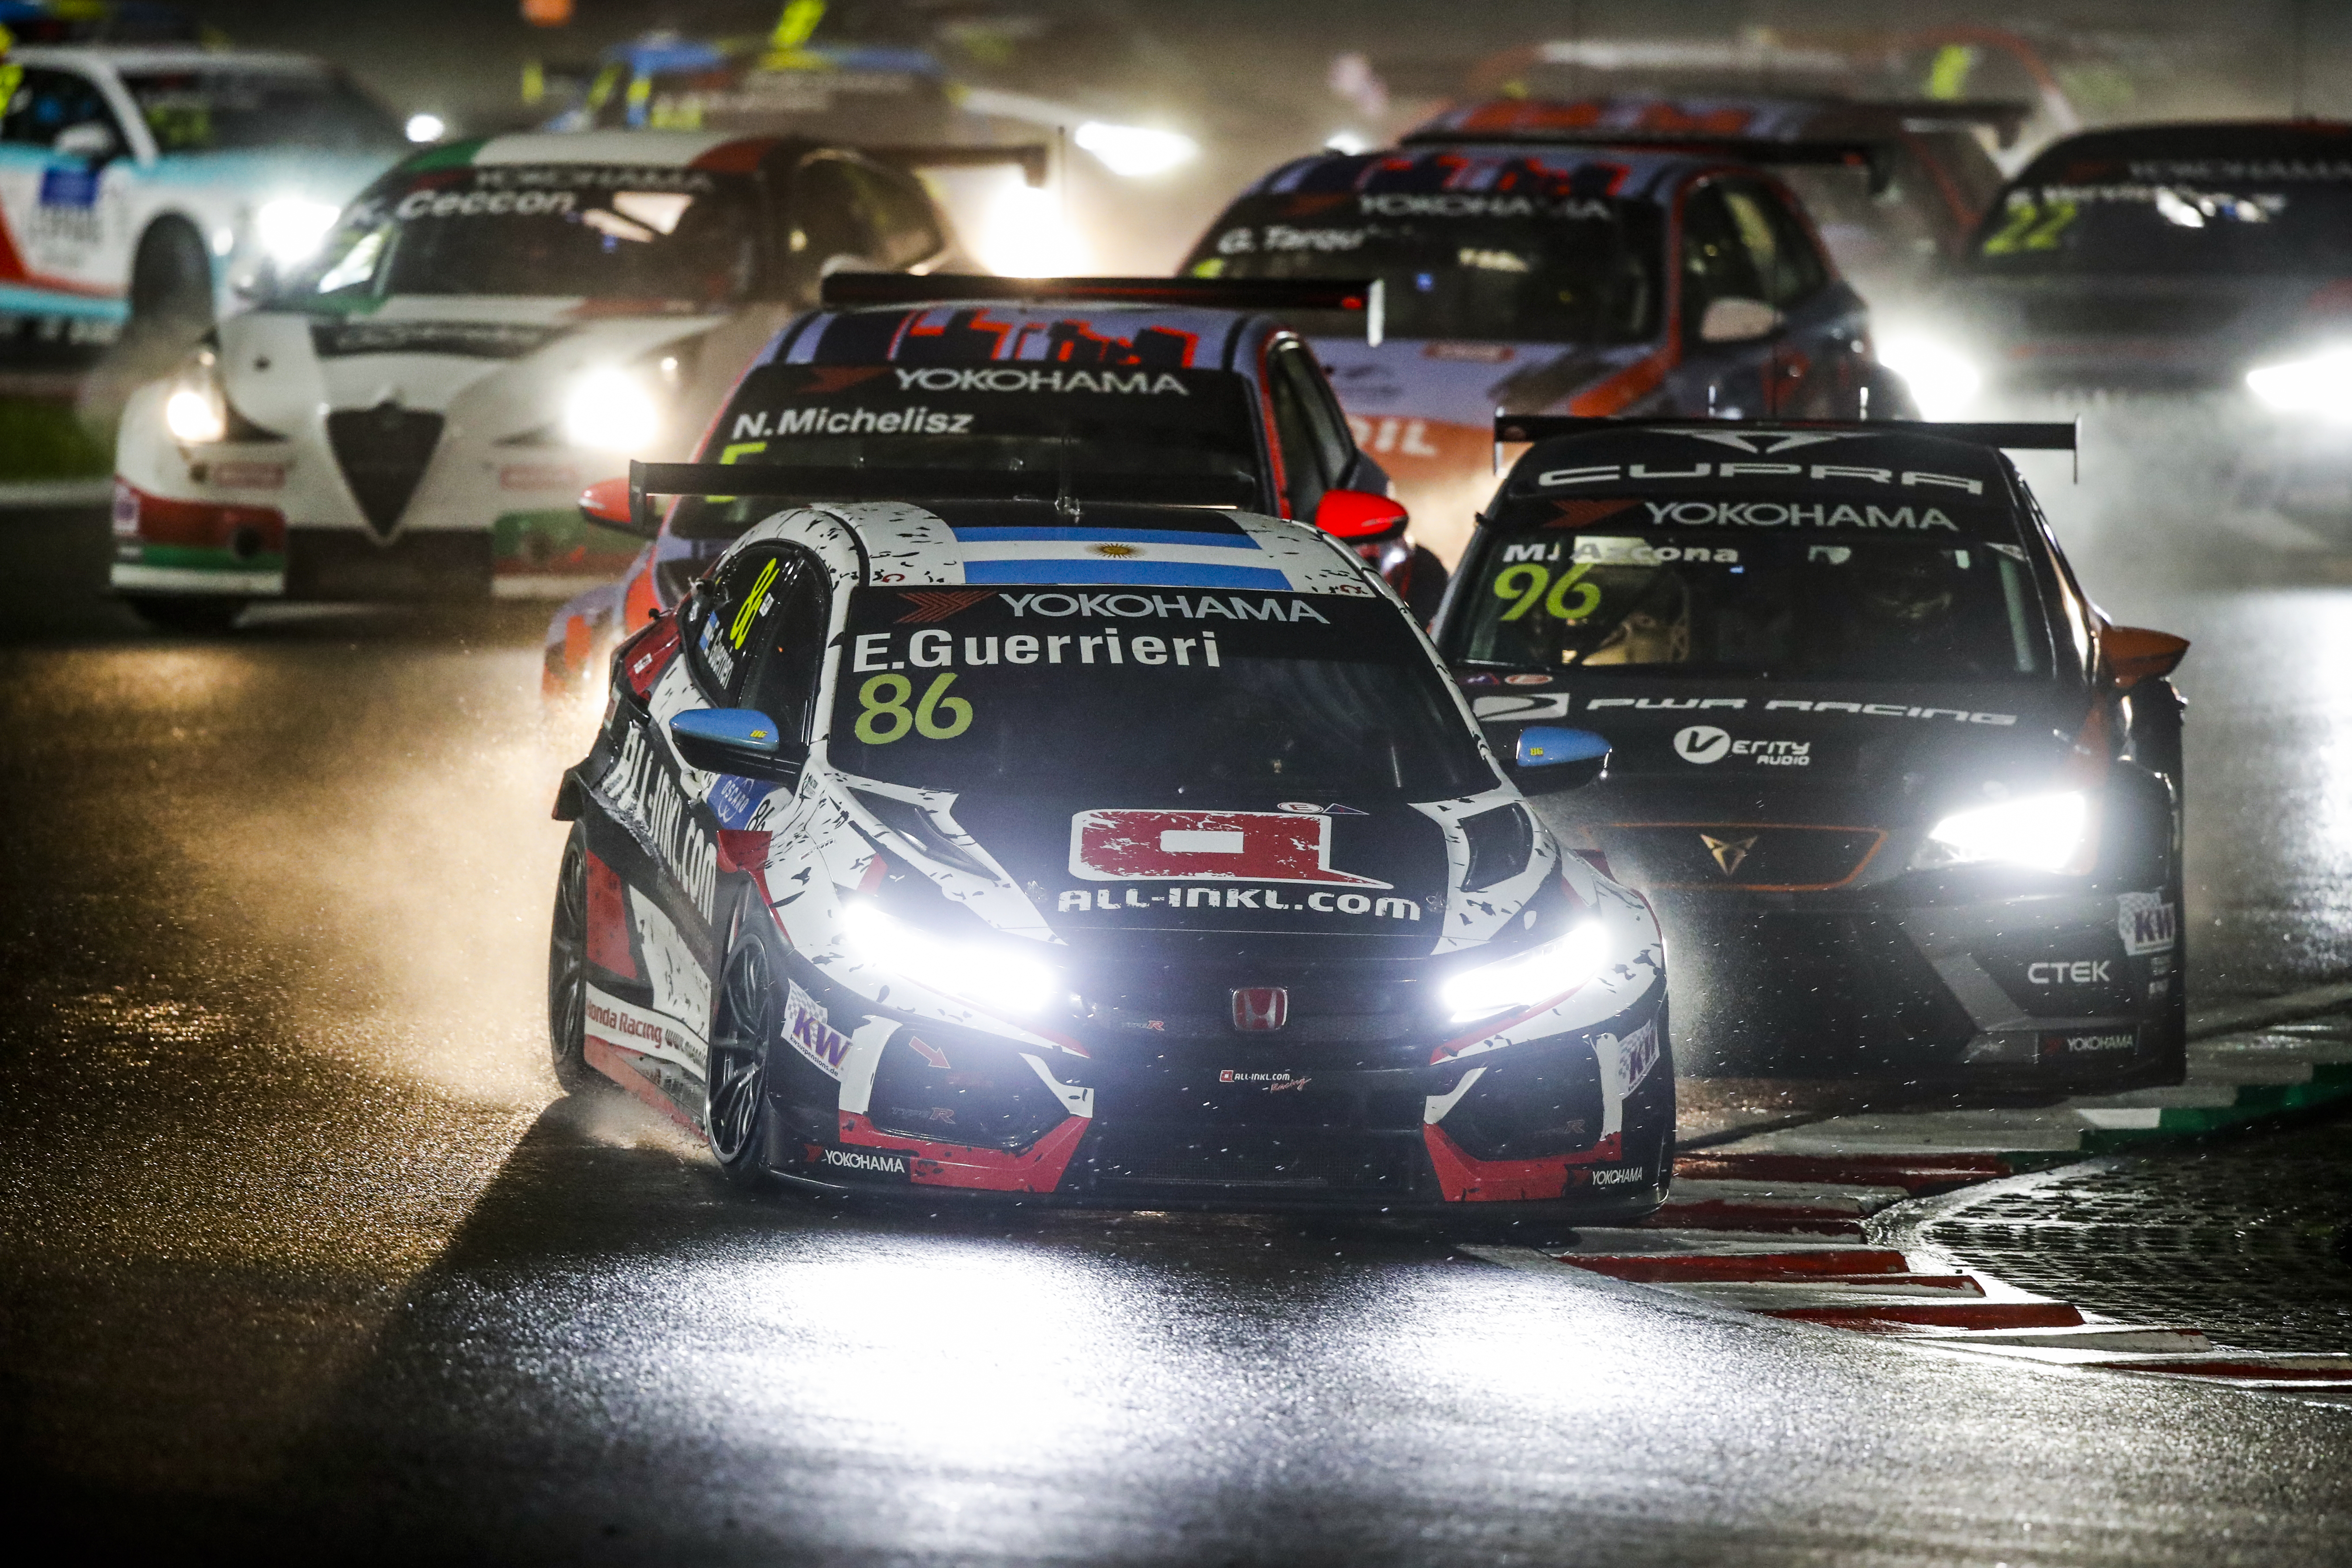 WTCR 2019 statistics: wins, poles, fastest laps, laps led and more